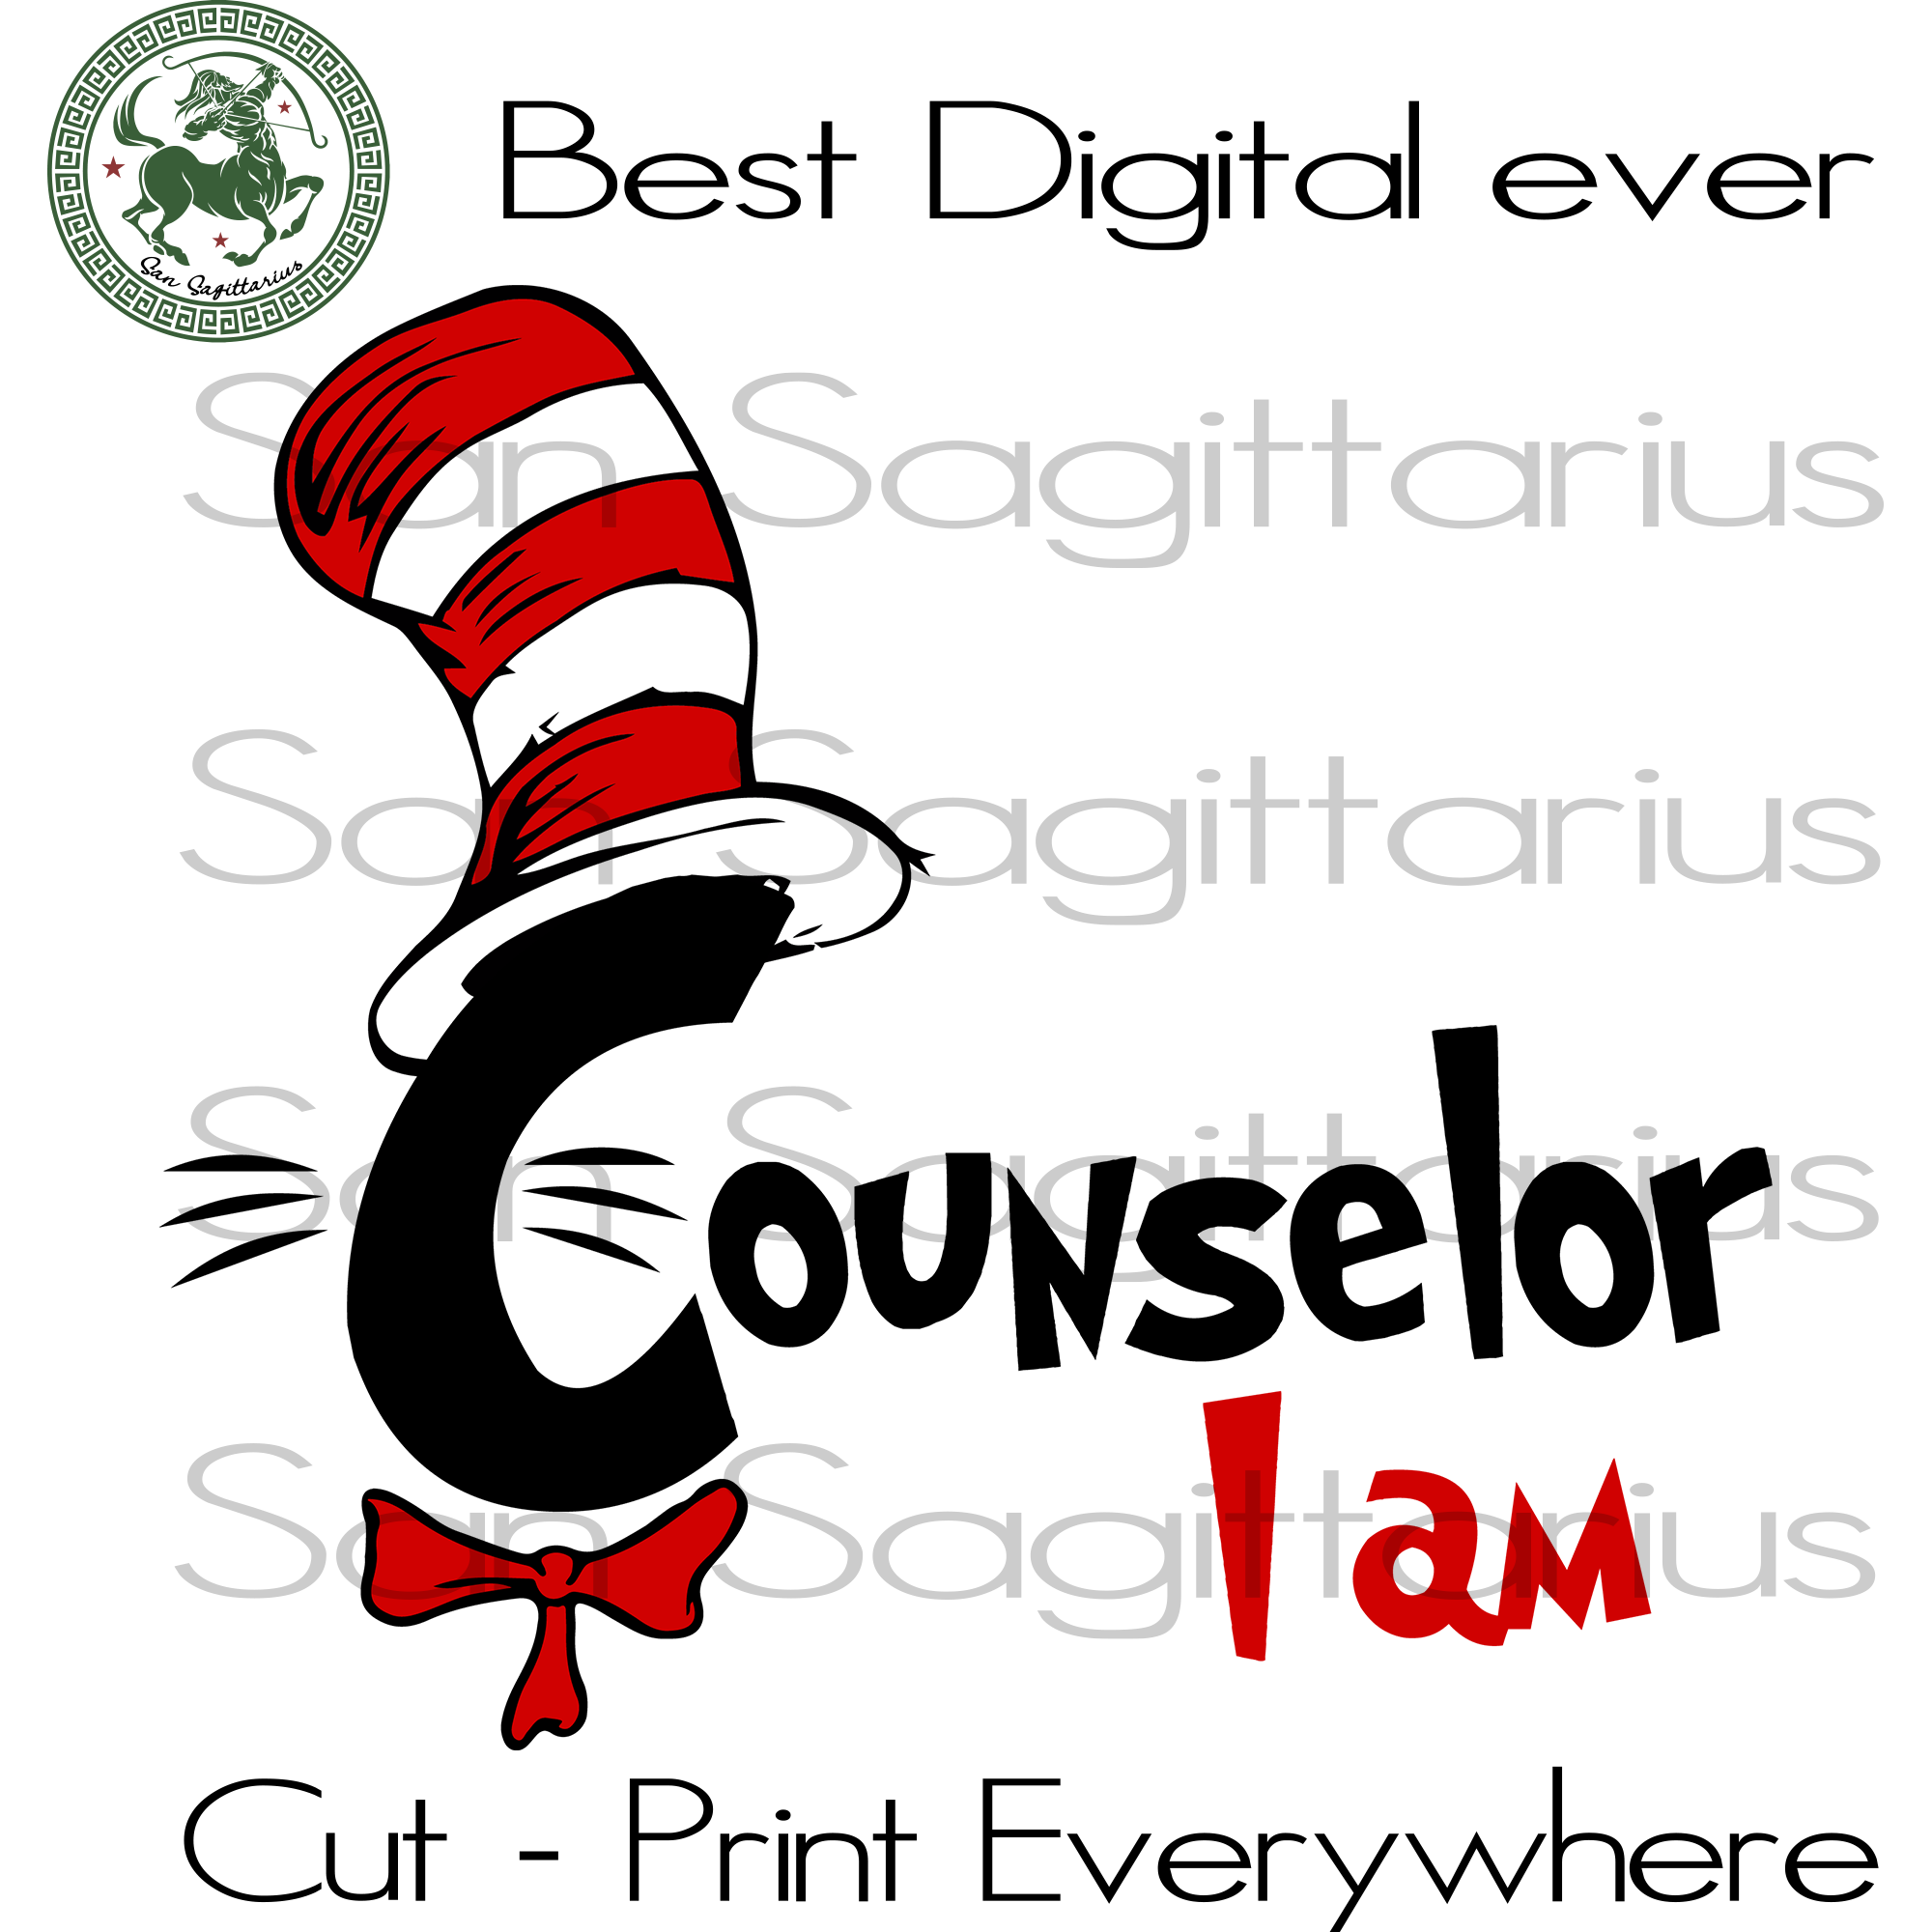 Counselor I am, Dr Seuss SVG, Dr Seuss Cut File, Dr Seuss Counselor, School Gift Svg, Thing 1 Thing 2 SVG Files For Silhouette, Cricut Files, SVG DXF EPS PNG Instant Download